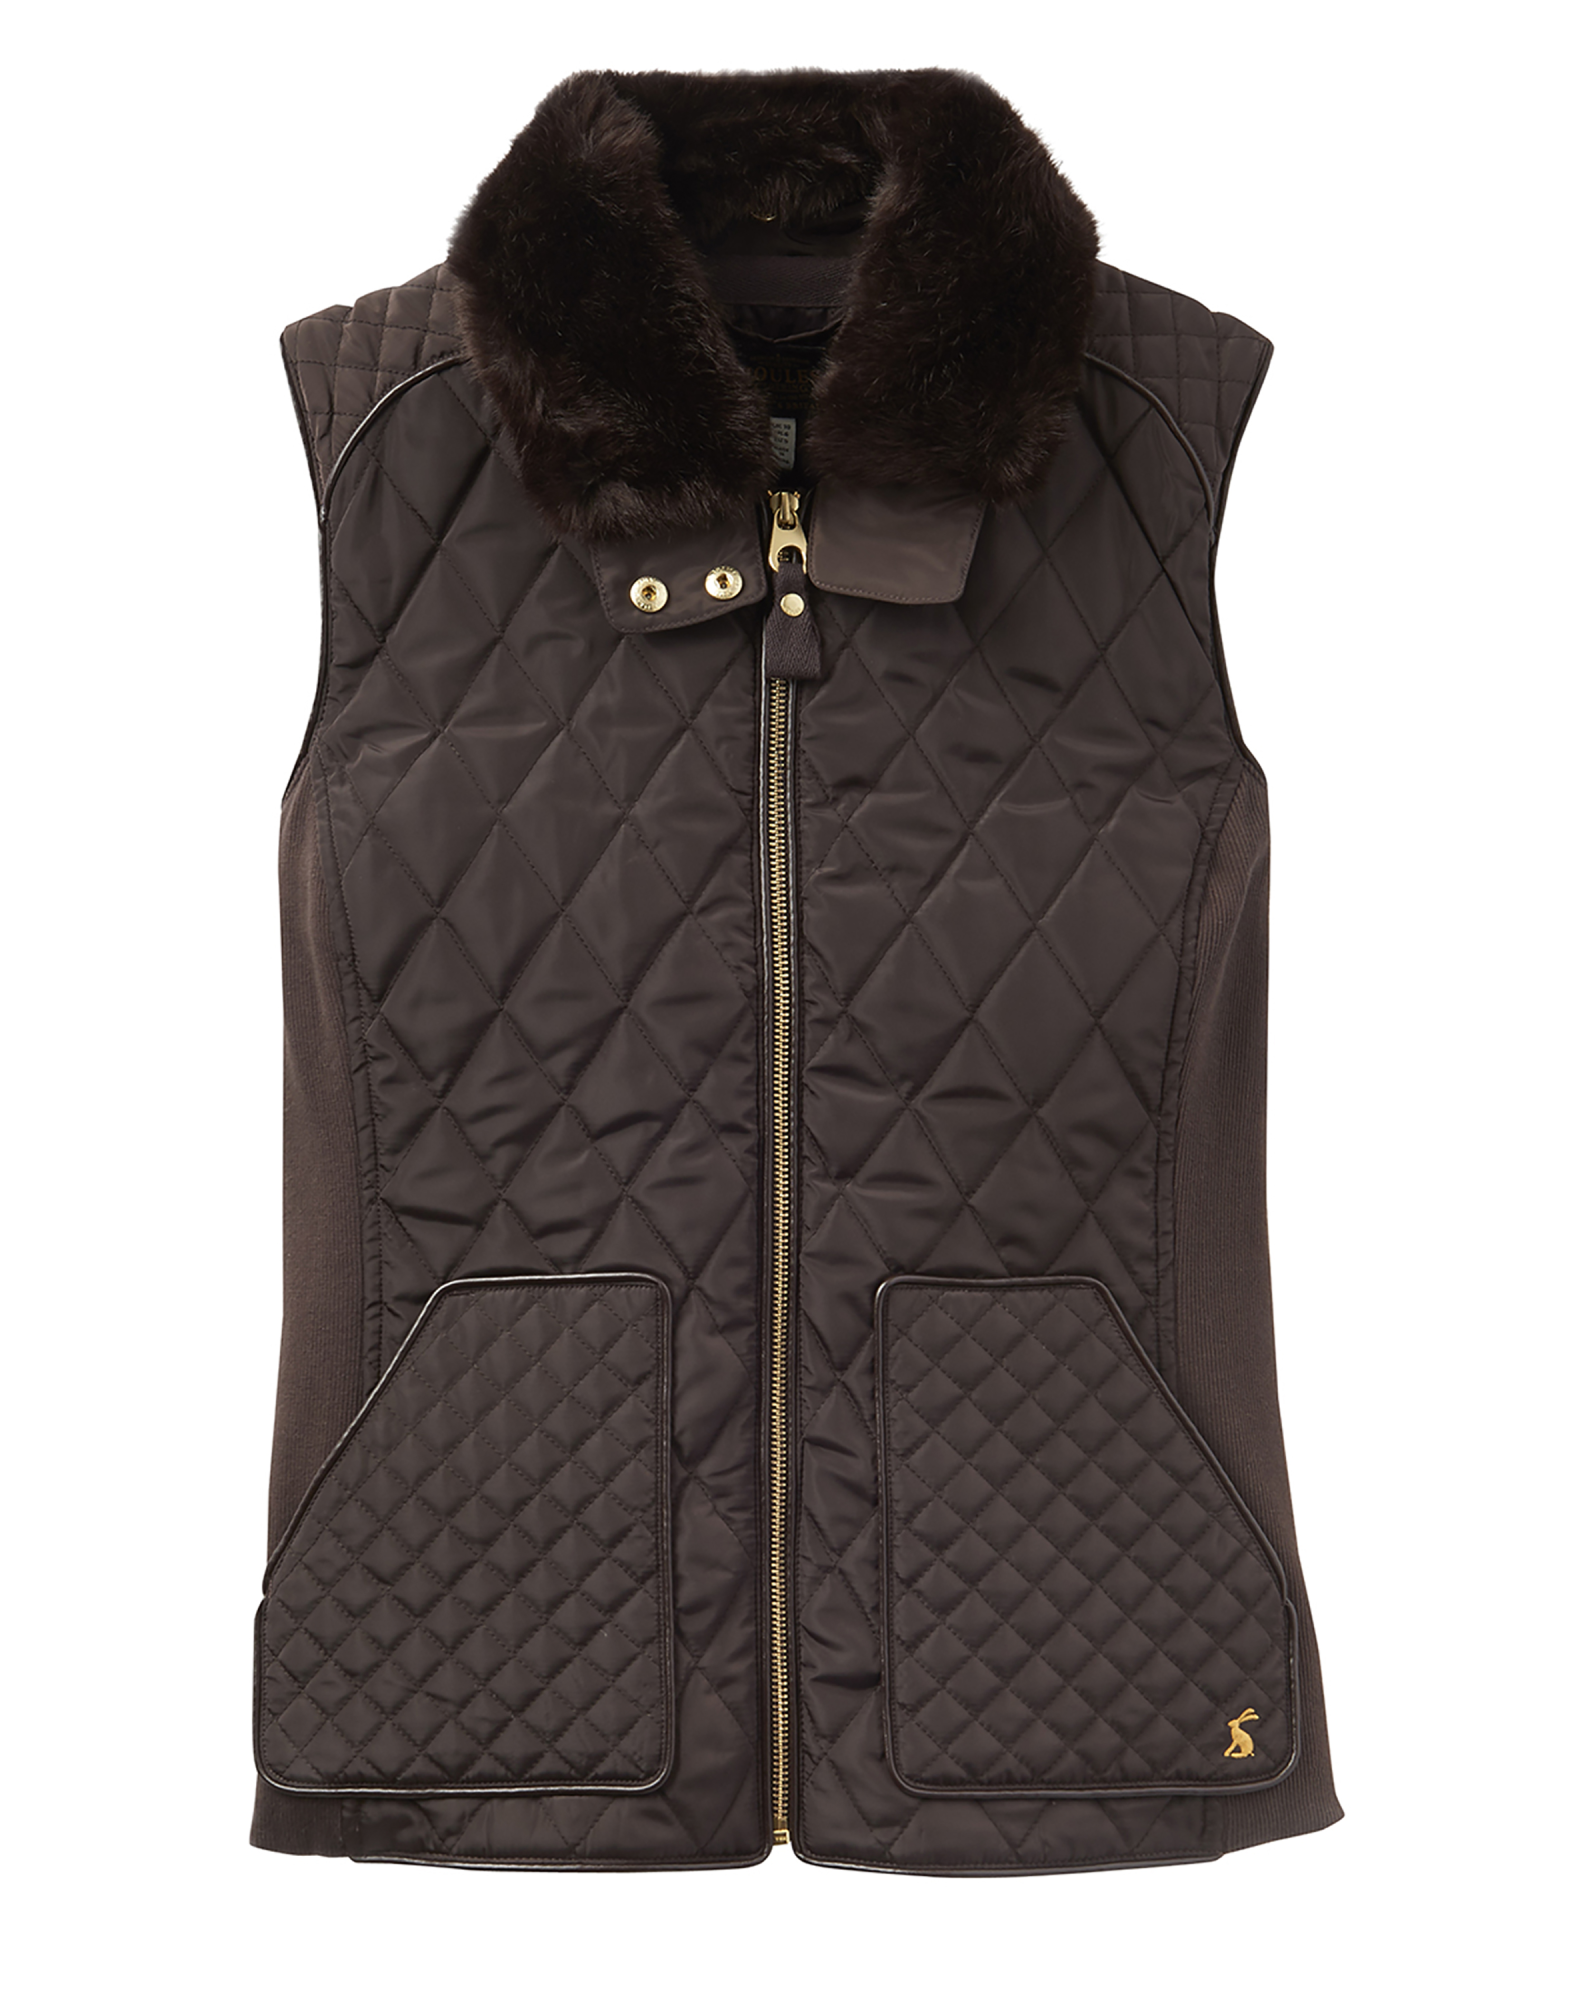 Joules Inverness Womens Quilted Gilet Faux Fur Collar - Dark Brown ... : quilted gillet - Adamdwight.com